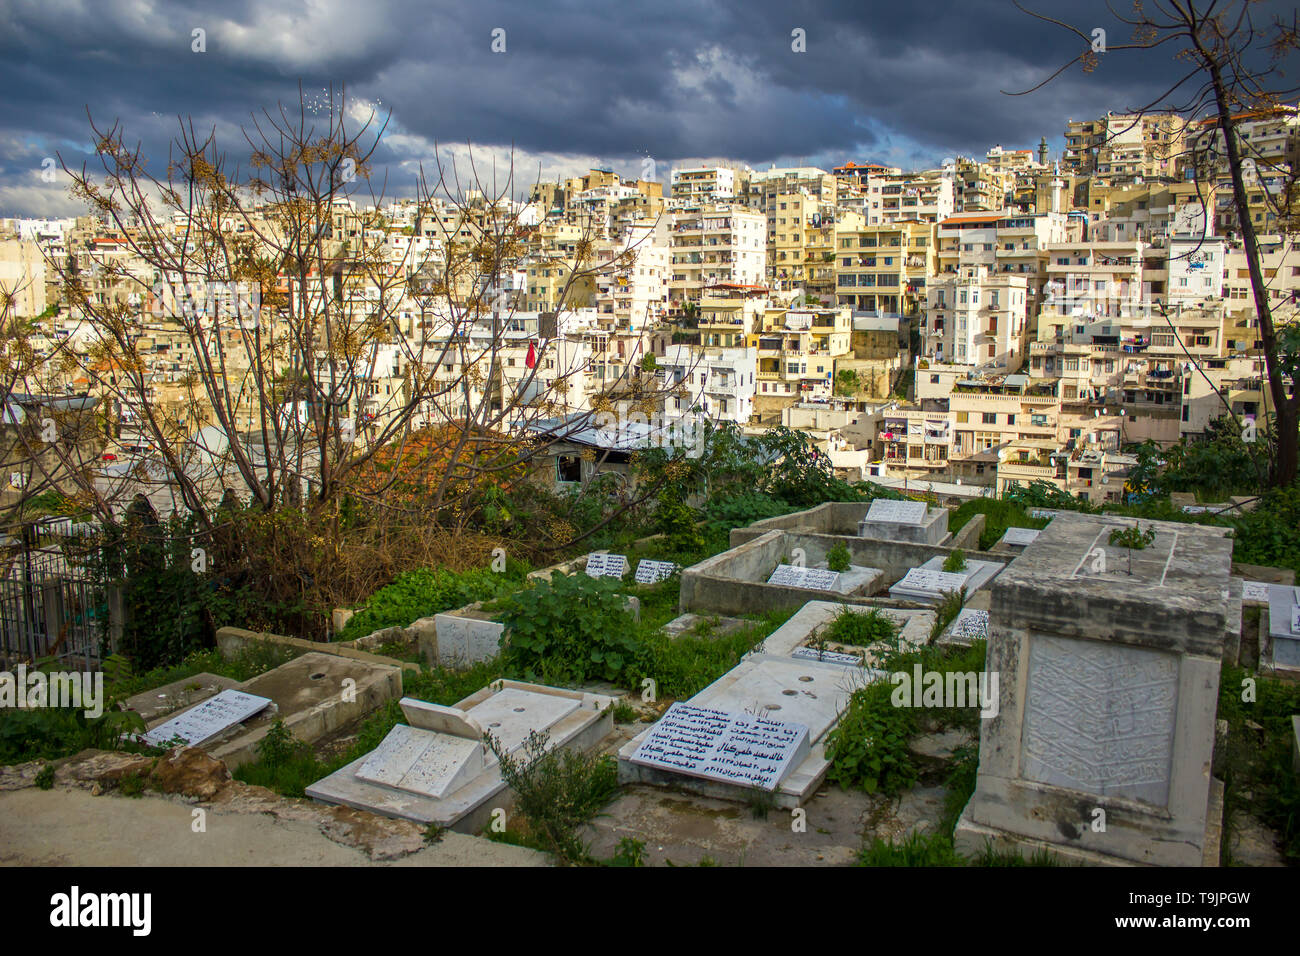 Tripoli, Lebanon - January 15, 2016: Cemetery and top view on residential area in Tripoli, Lebanon - Stock Image